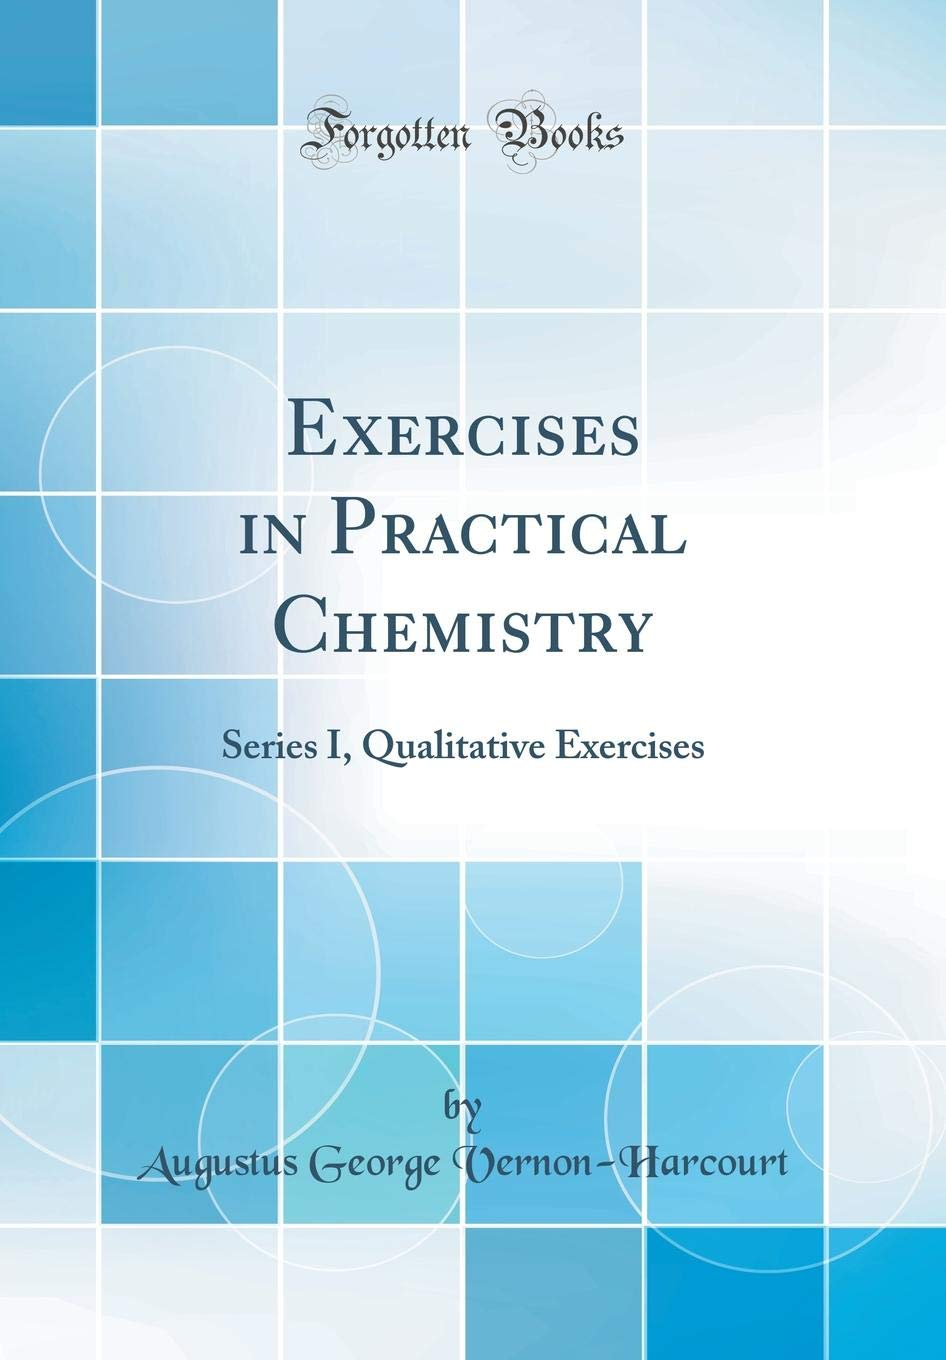 Exercises in Practical Chemistry: Series I, Qualitative